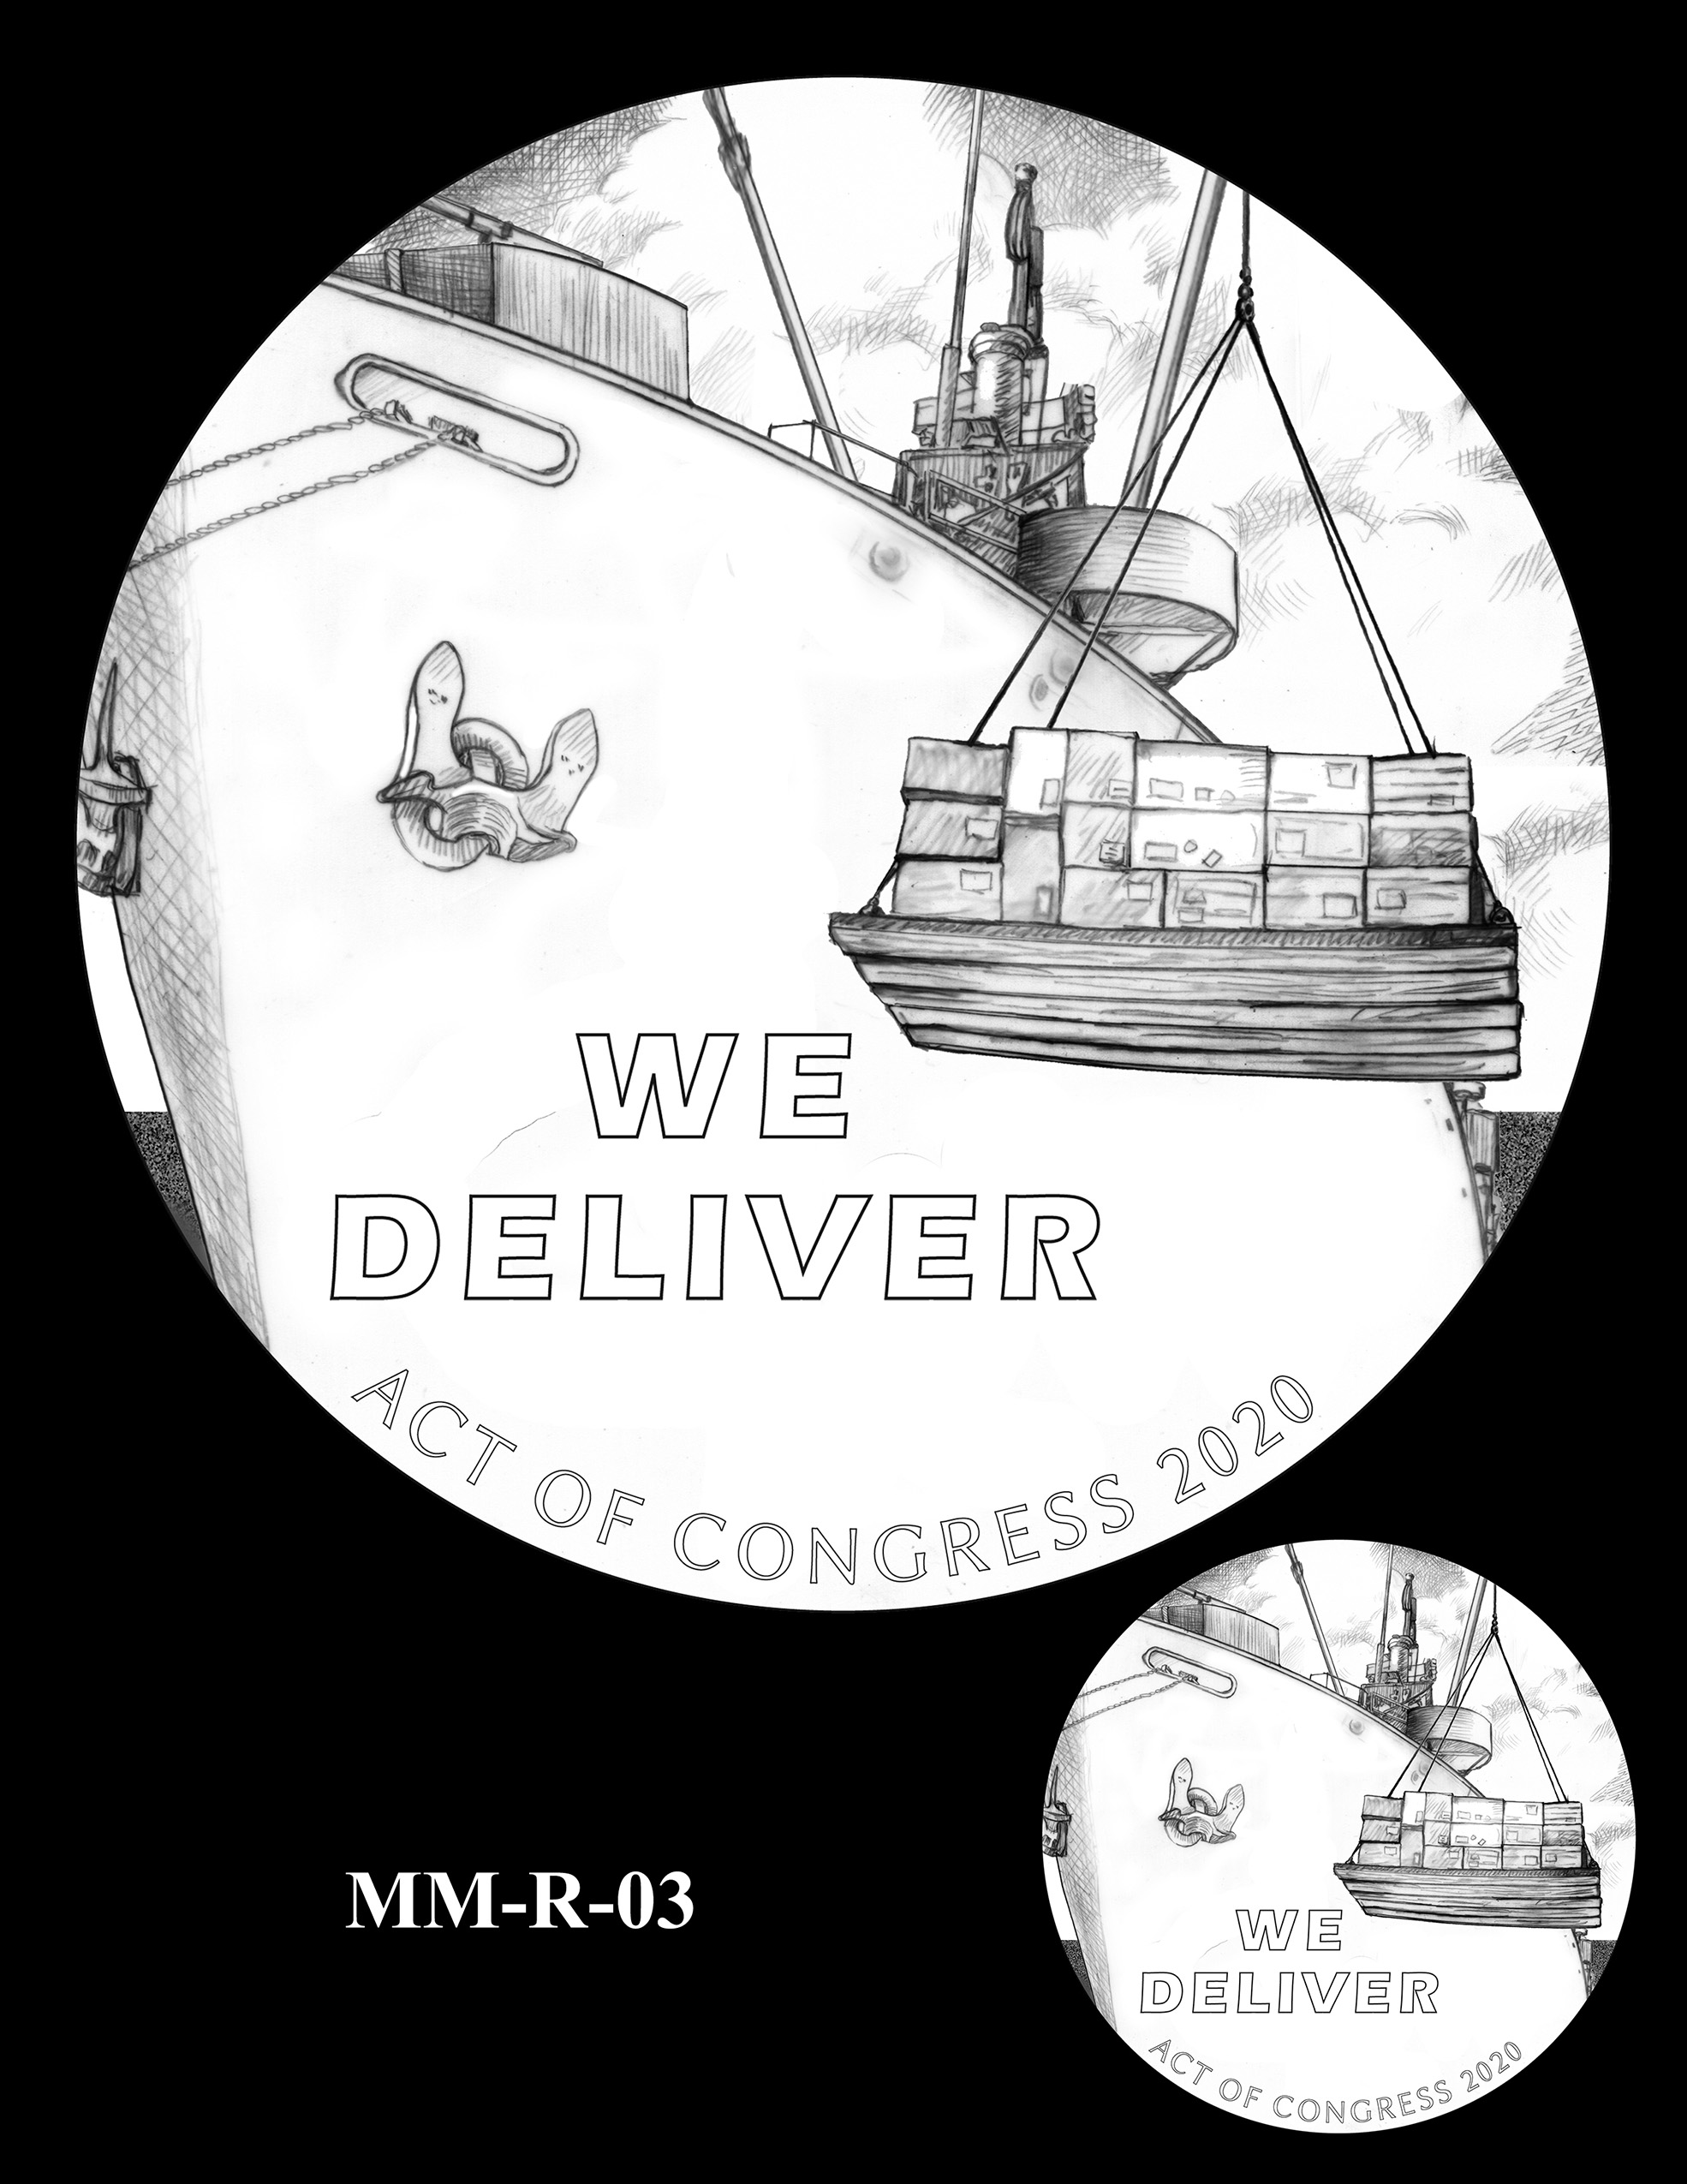 MM-R-03 -- Merchant Mariners of World War II Congressional Gold Medal